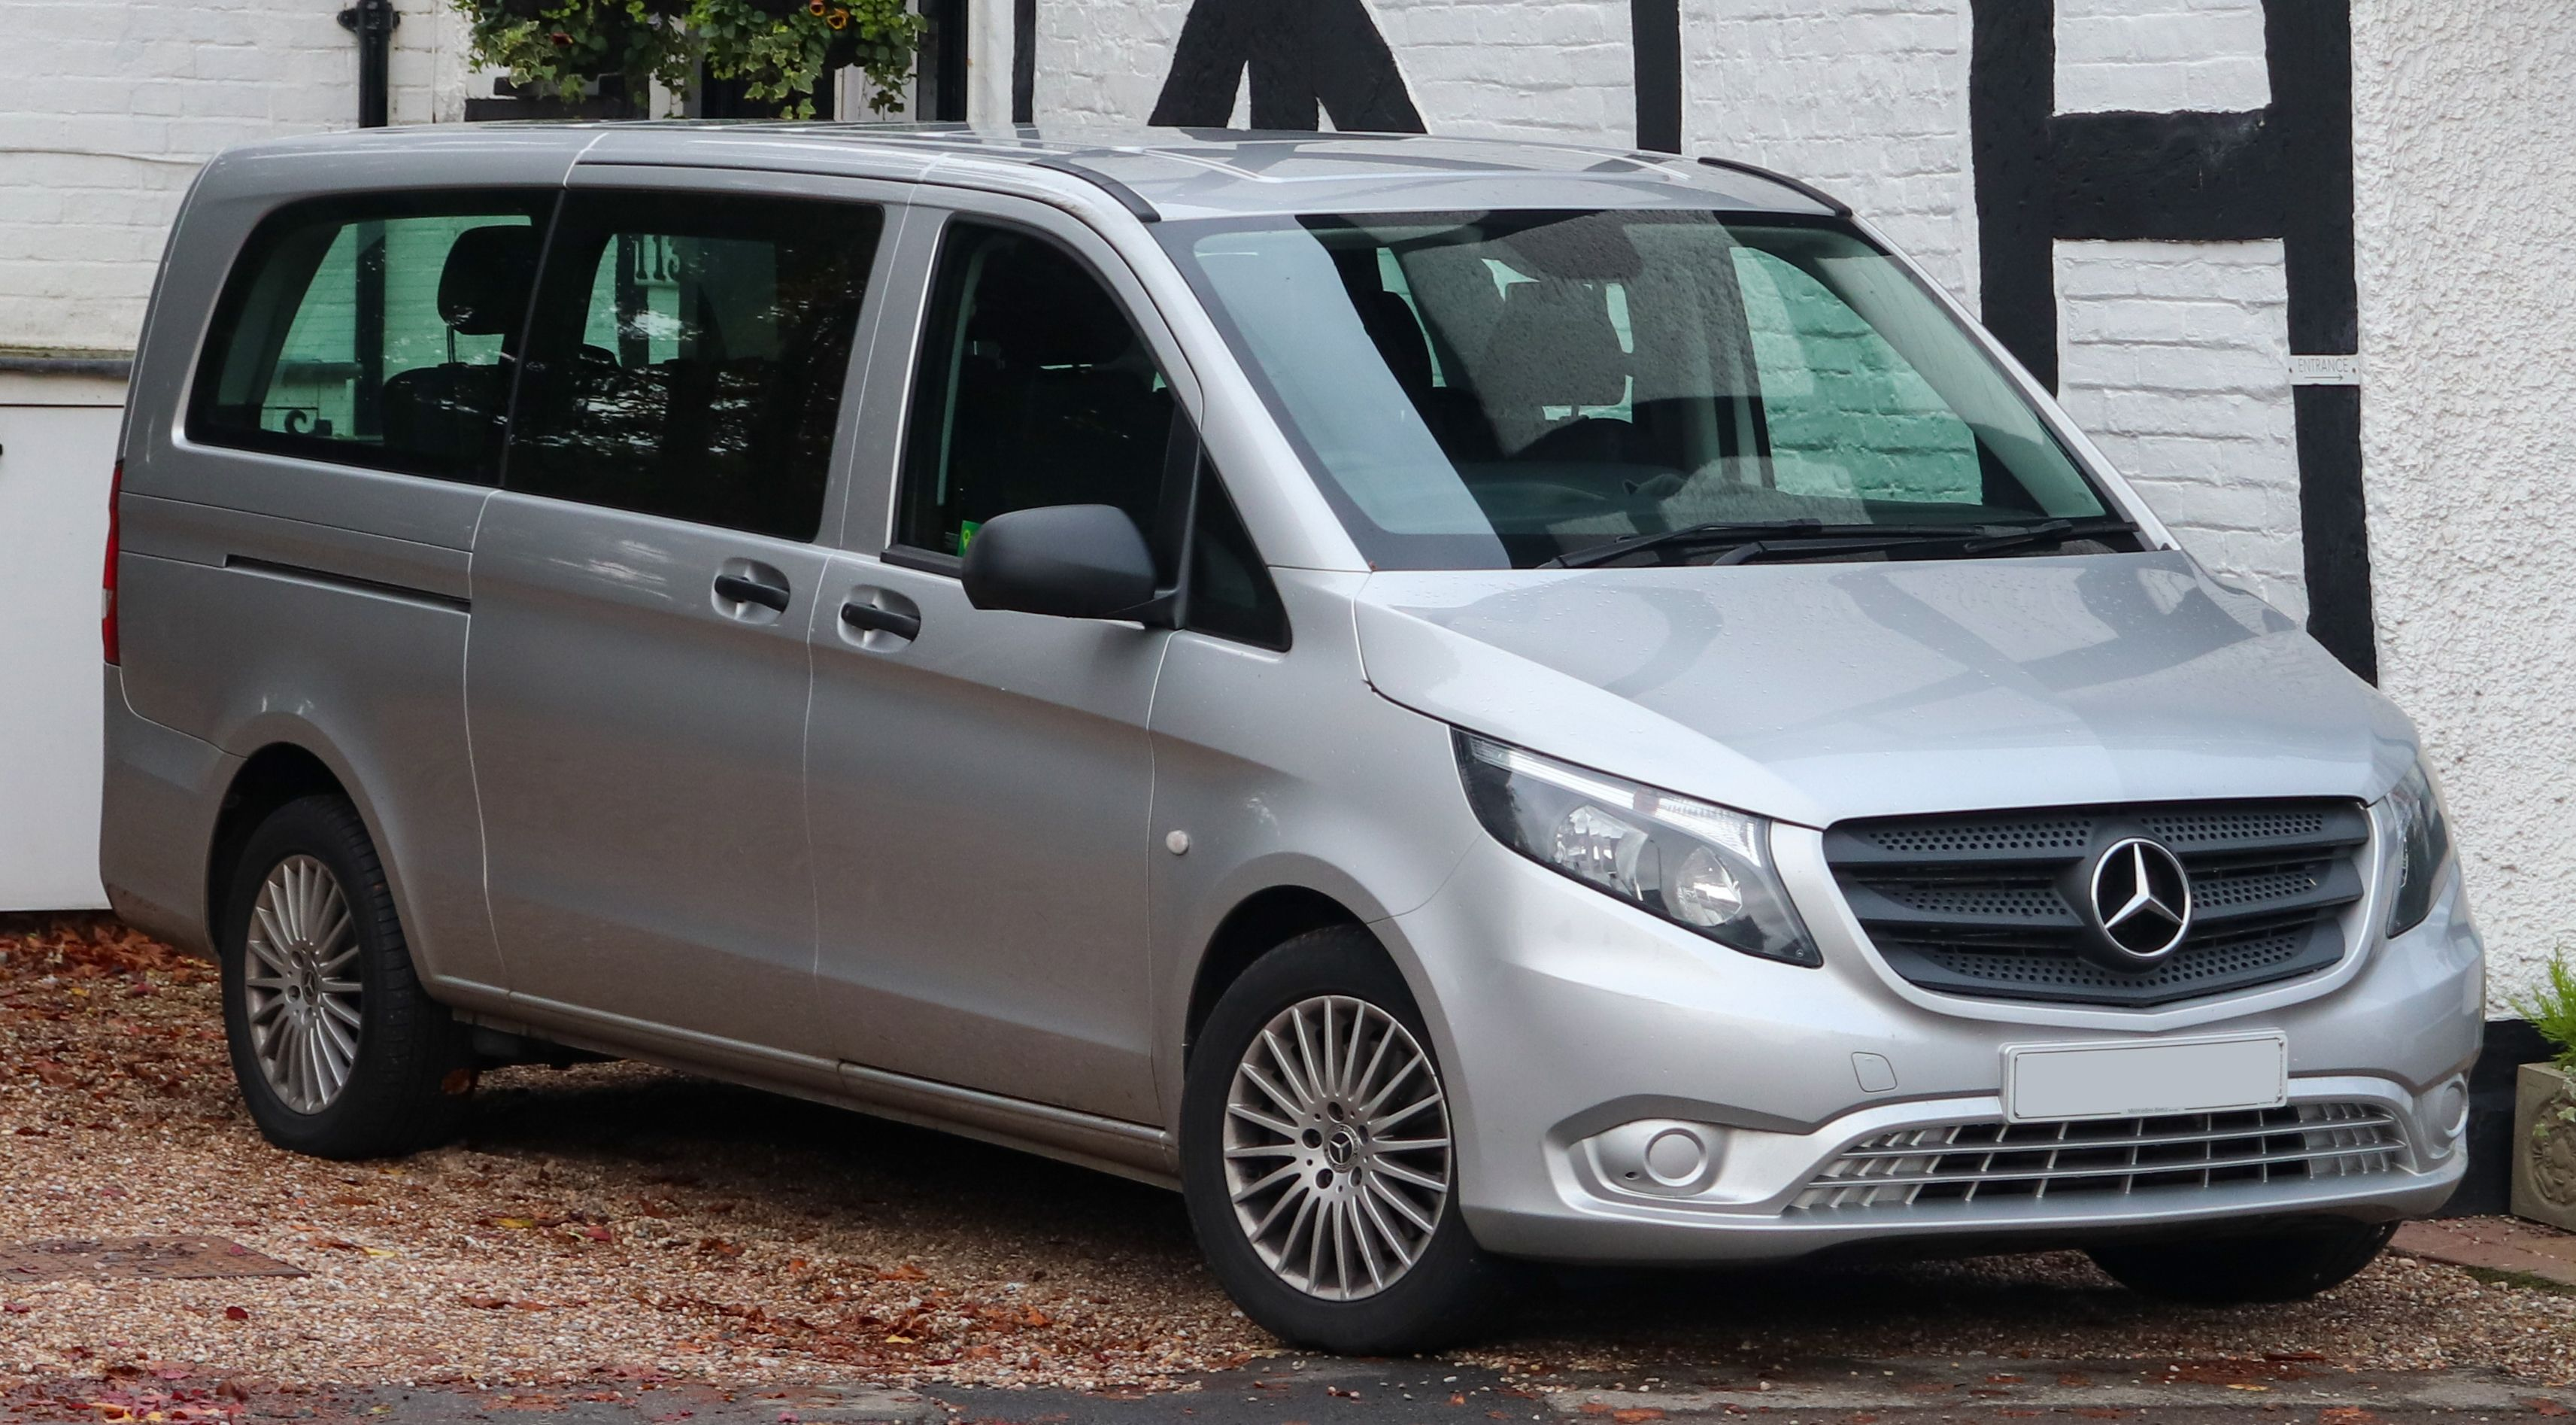 Grab The Best Quality And Low Priced Mercedes Vito Reconditioned Or Second Hand Engines Mercedes Mercedes Benz Vito Car Manufacturers